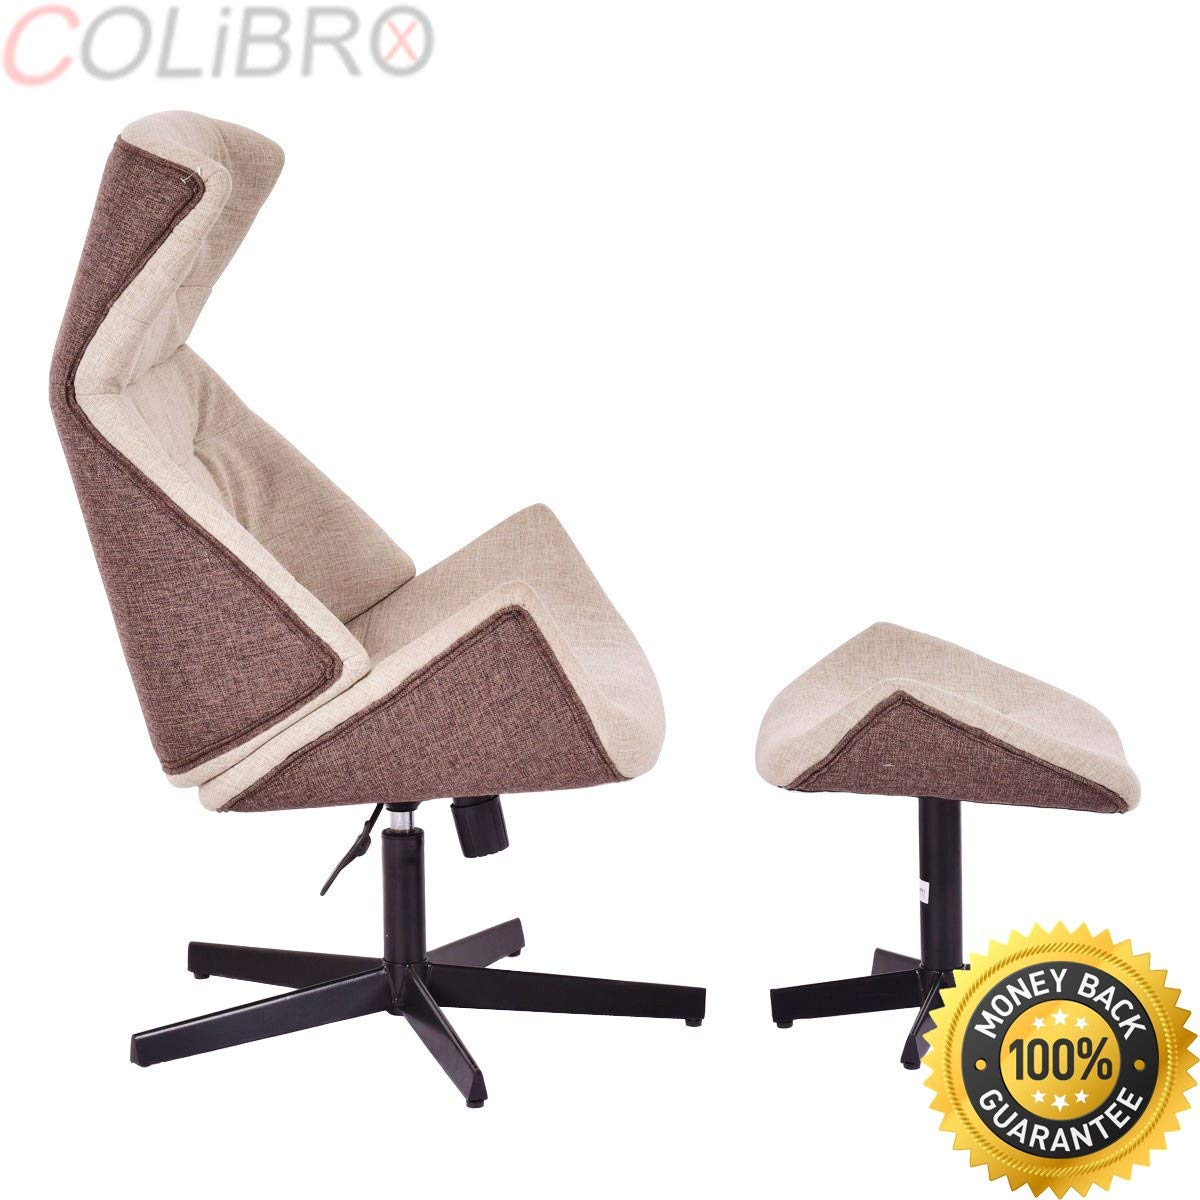 COLIBROX--New Executive Chair Lounge Leisure Chair Adjustable Height Swivel w/Ottoman. adjustable chair height. leather executive office chair high back. best counter height office chair amazon.